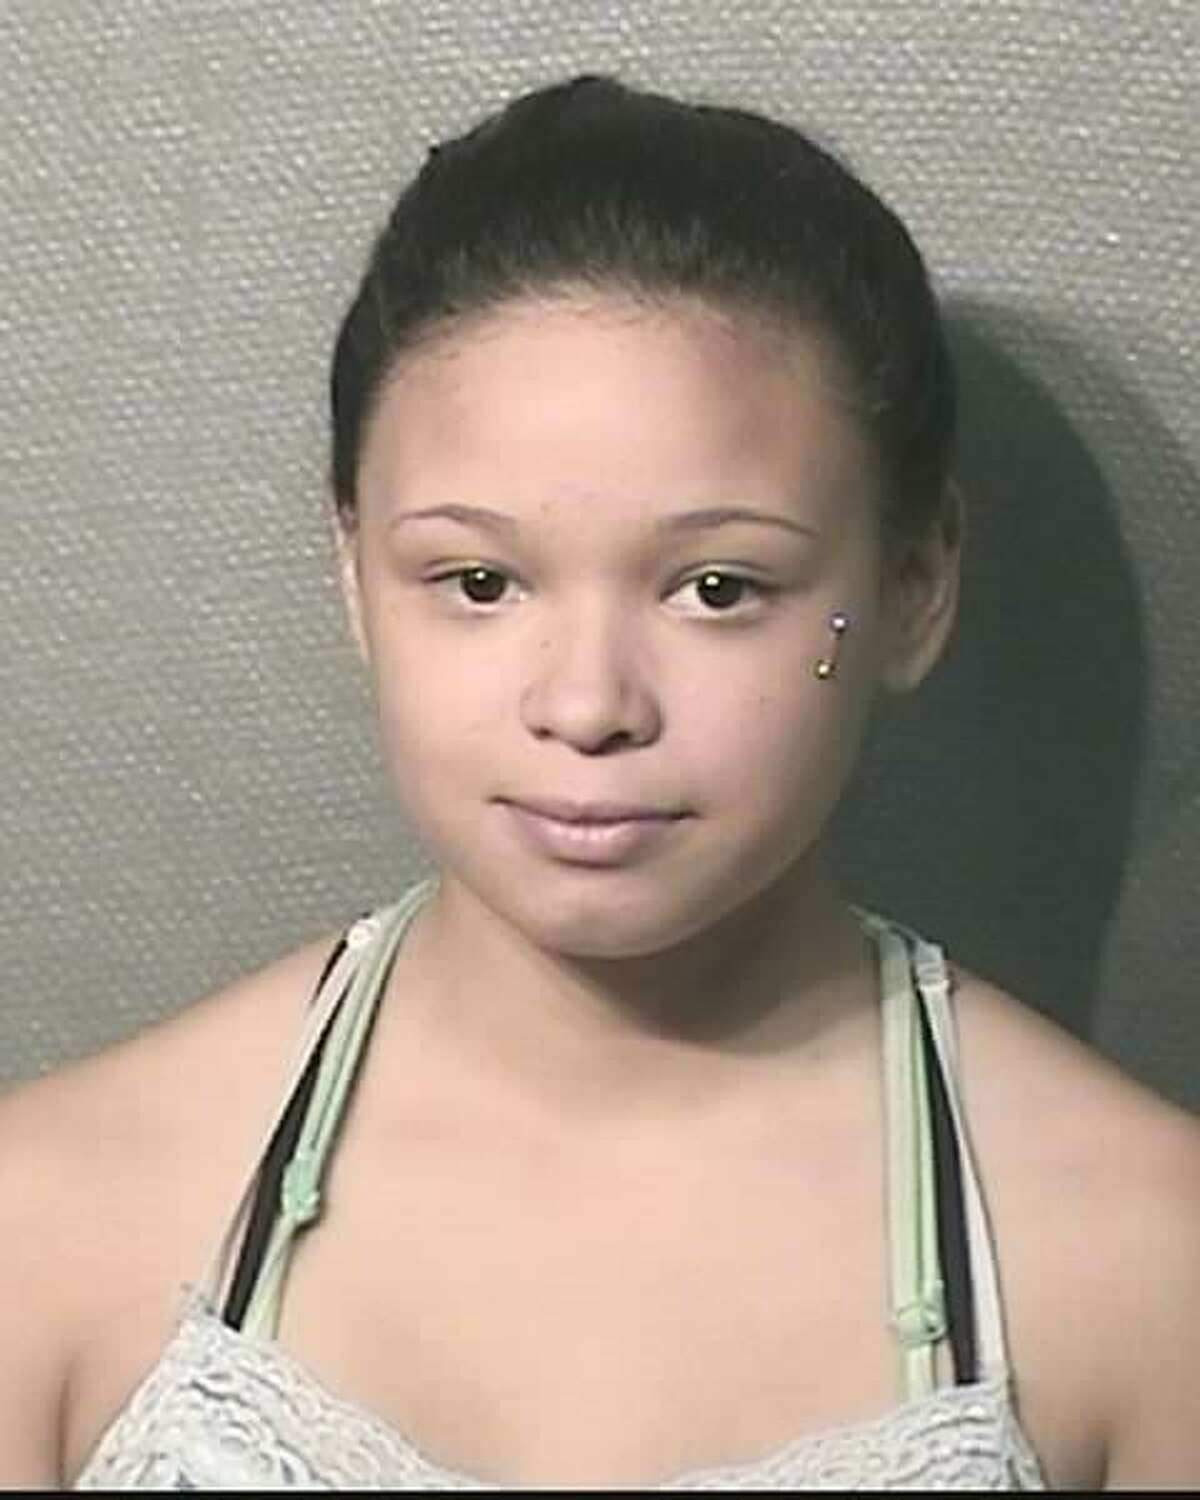 Yula Rodriguez of Magnolia is wanted by the Houston Police Department on a charge of aggravated robbery with a deadly weapon. Her warrant is active as of Sept. 14, 2016.